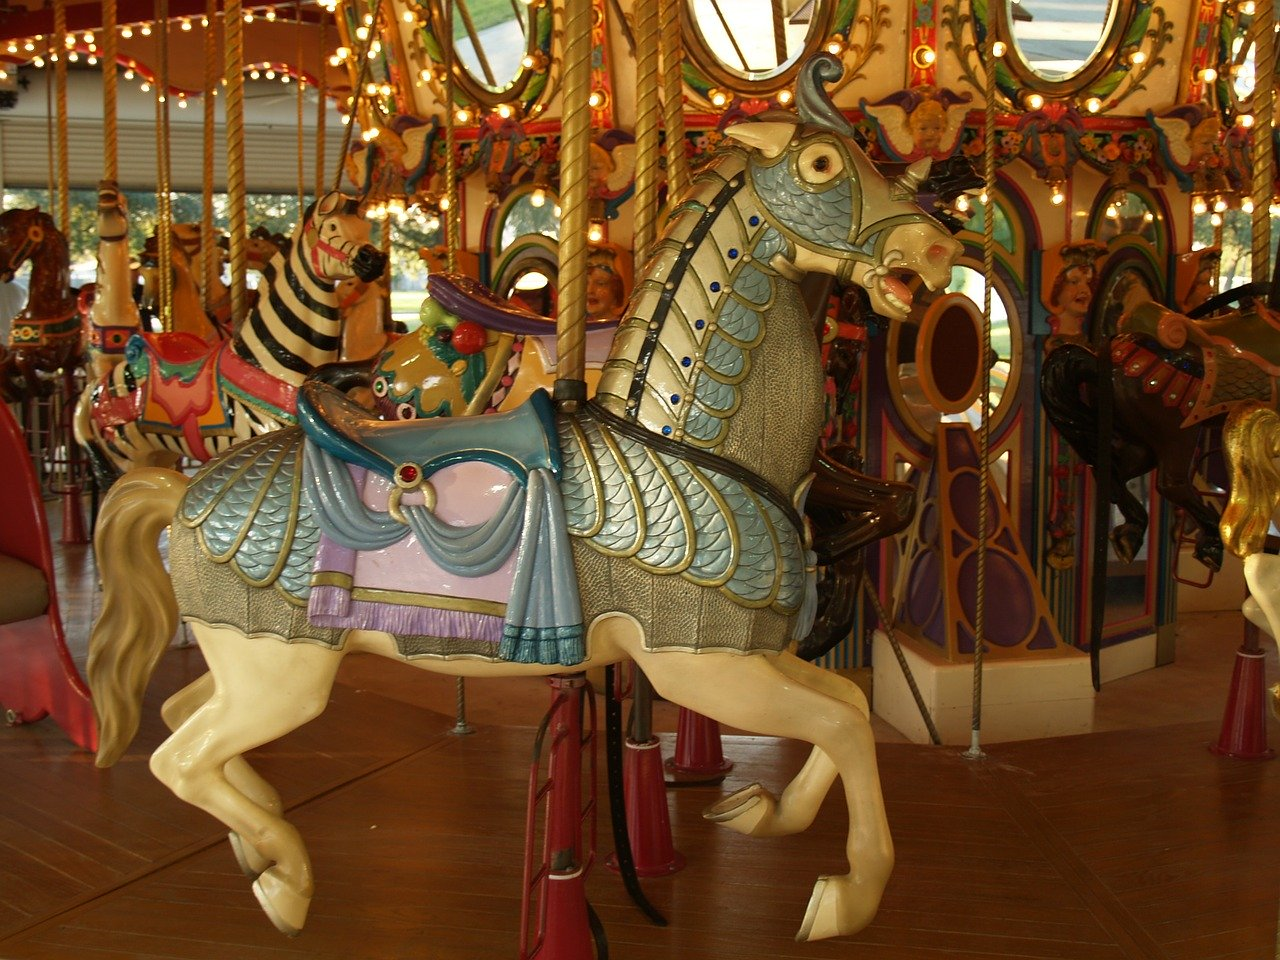 Stepping off the merry-go-round for reflection